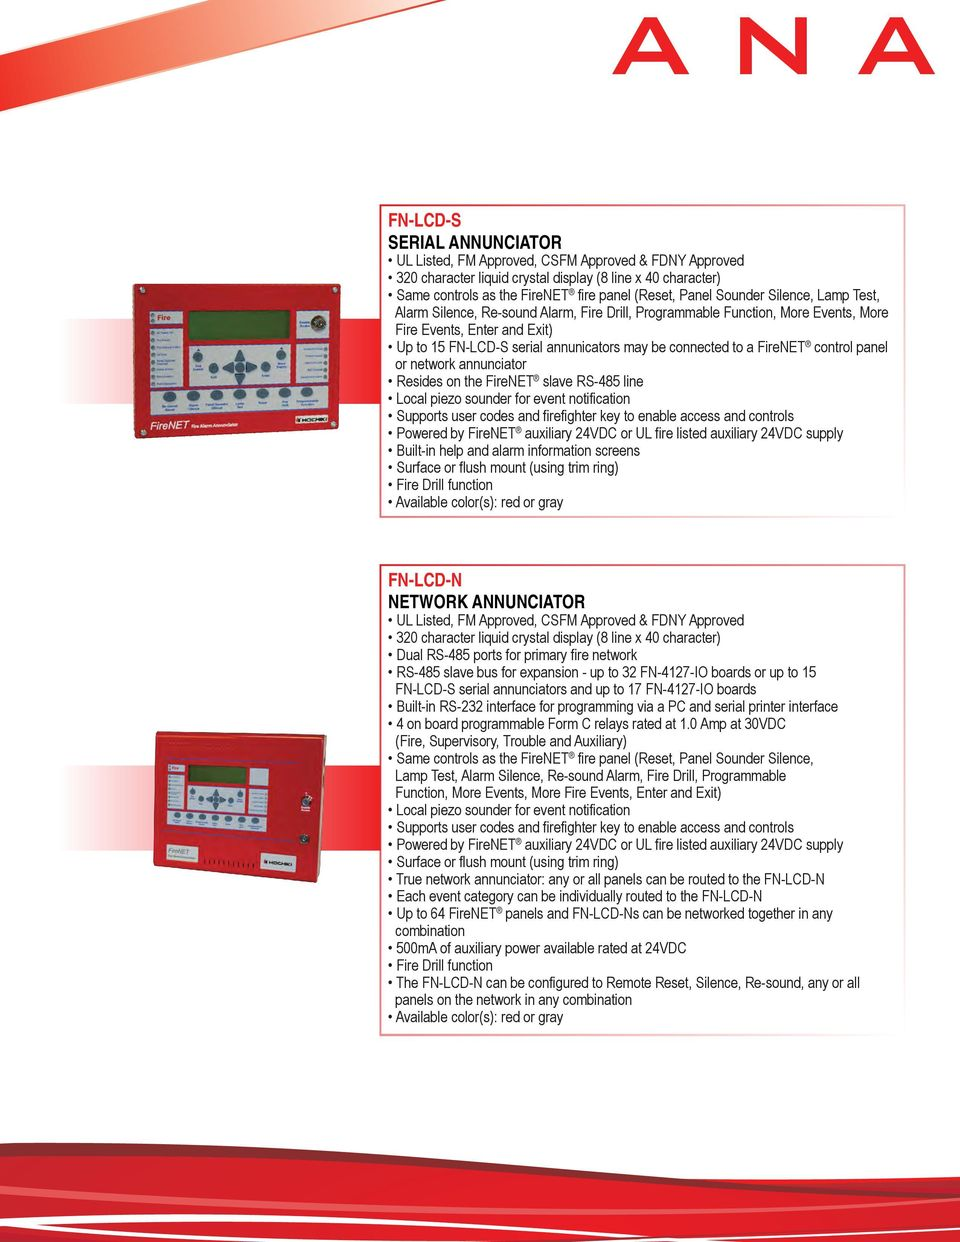 annunciator Resides on the FireNET slave RS-485 line Local piezo sounder for event notification Supports user codes and firefighter key to enable access and controls Powered by FireNET auxiliary